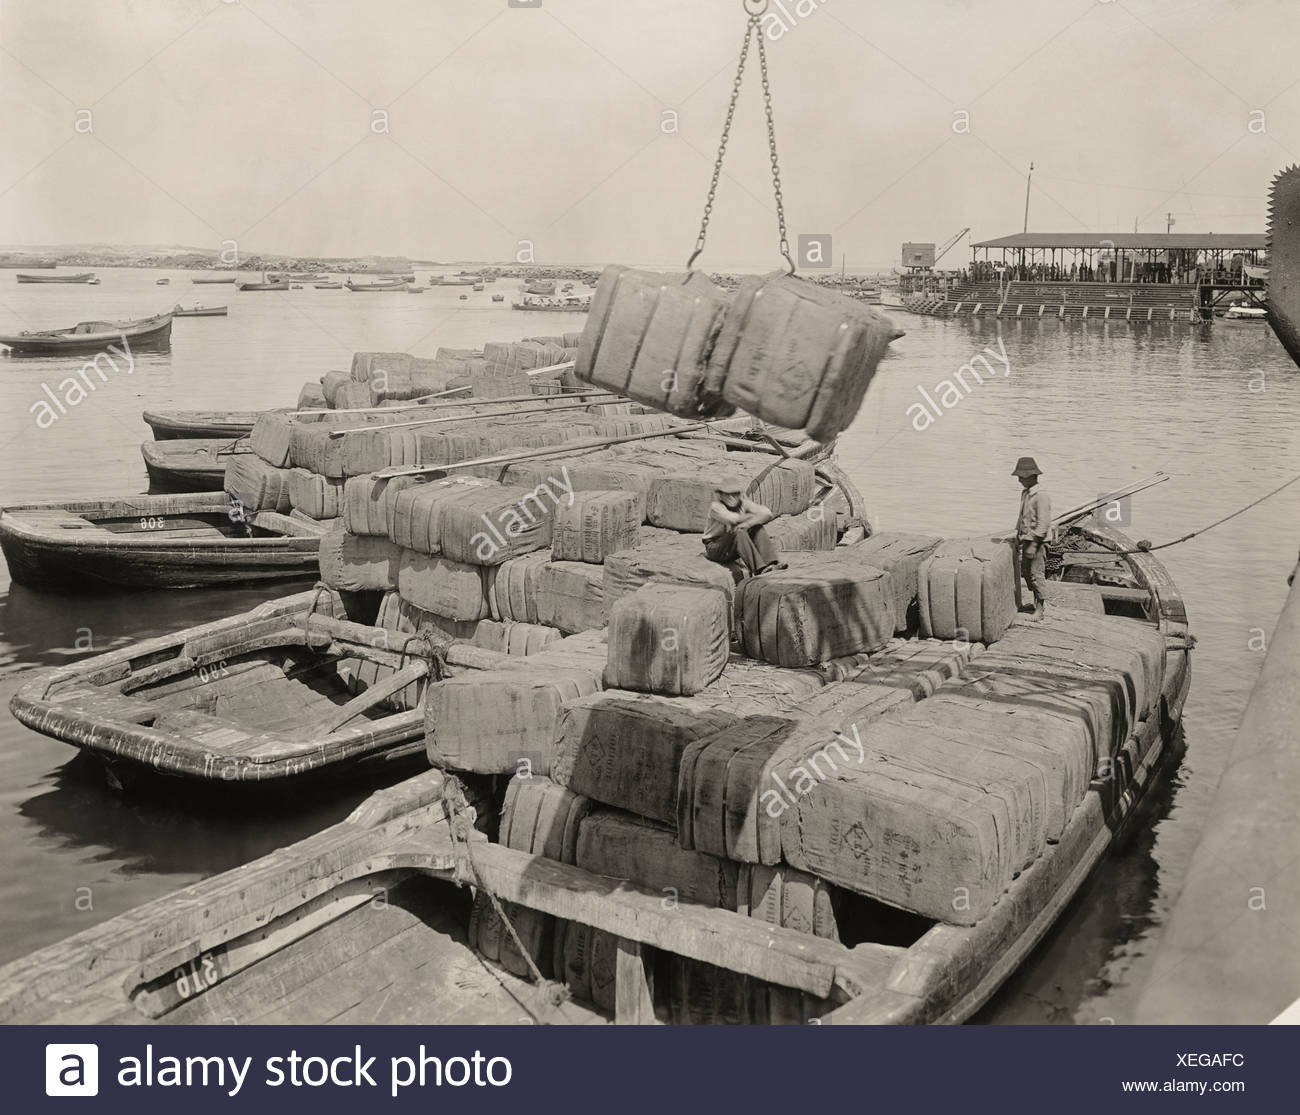 Bales of jute bags arrive from India for the Nitrate fields by ship. - Stock Image